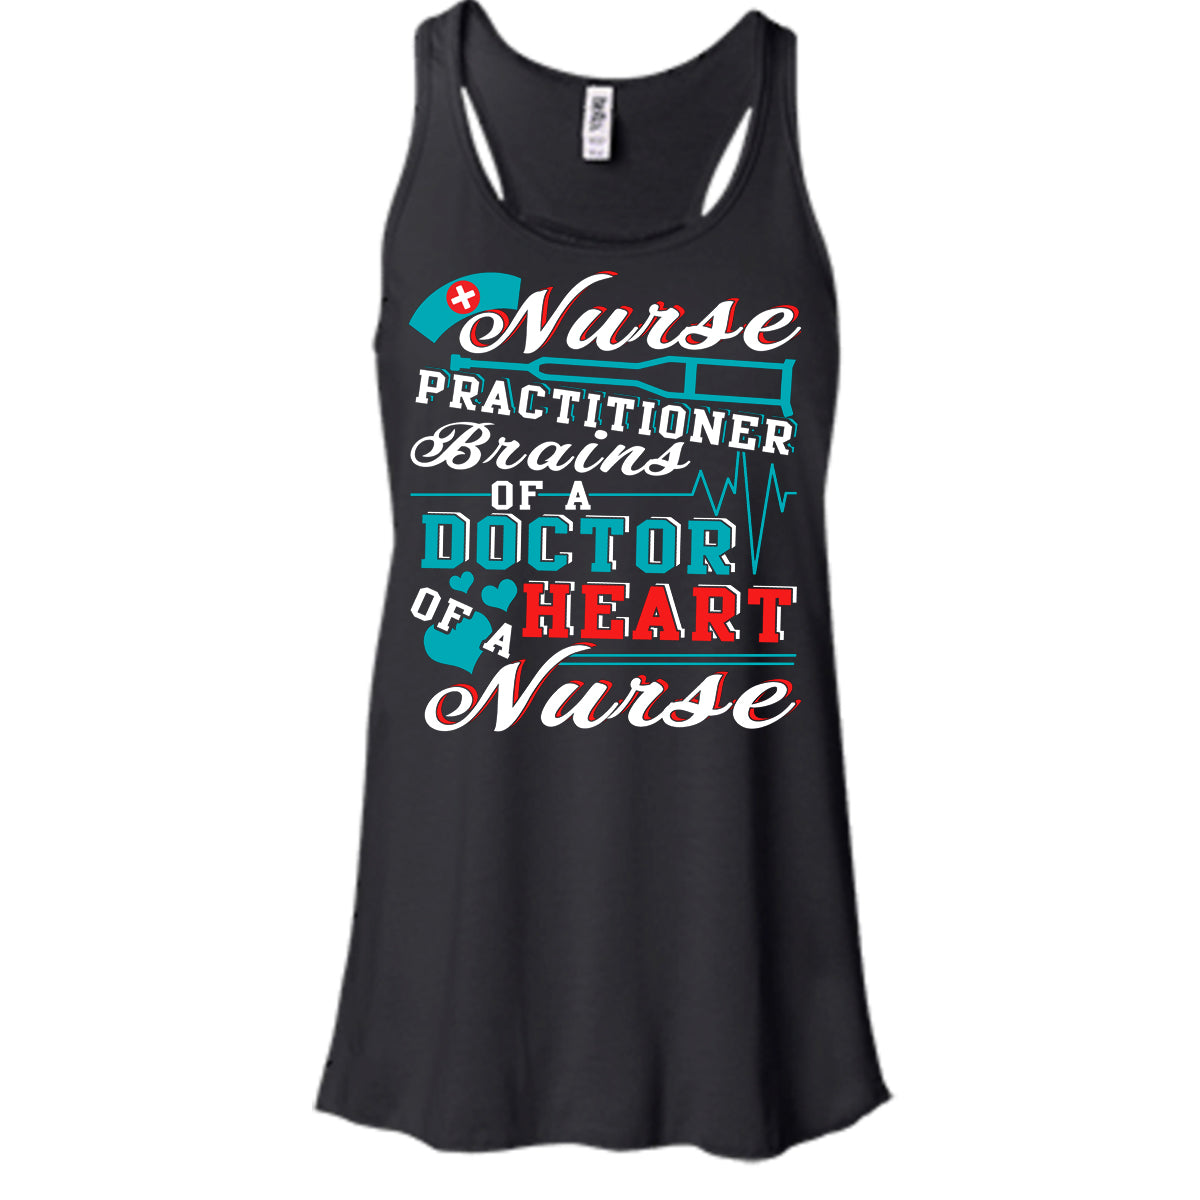 490e1362c3ae6 Nurse Practitioner T Shirt, Brains Of A Doctor T Shirt, Cool T Shirt ...